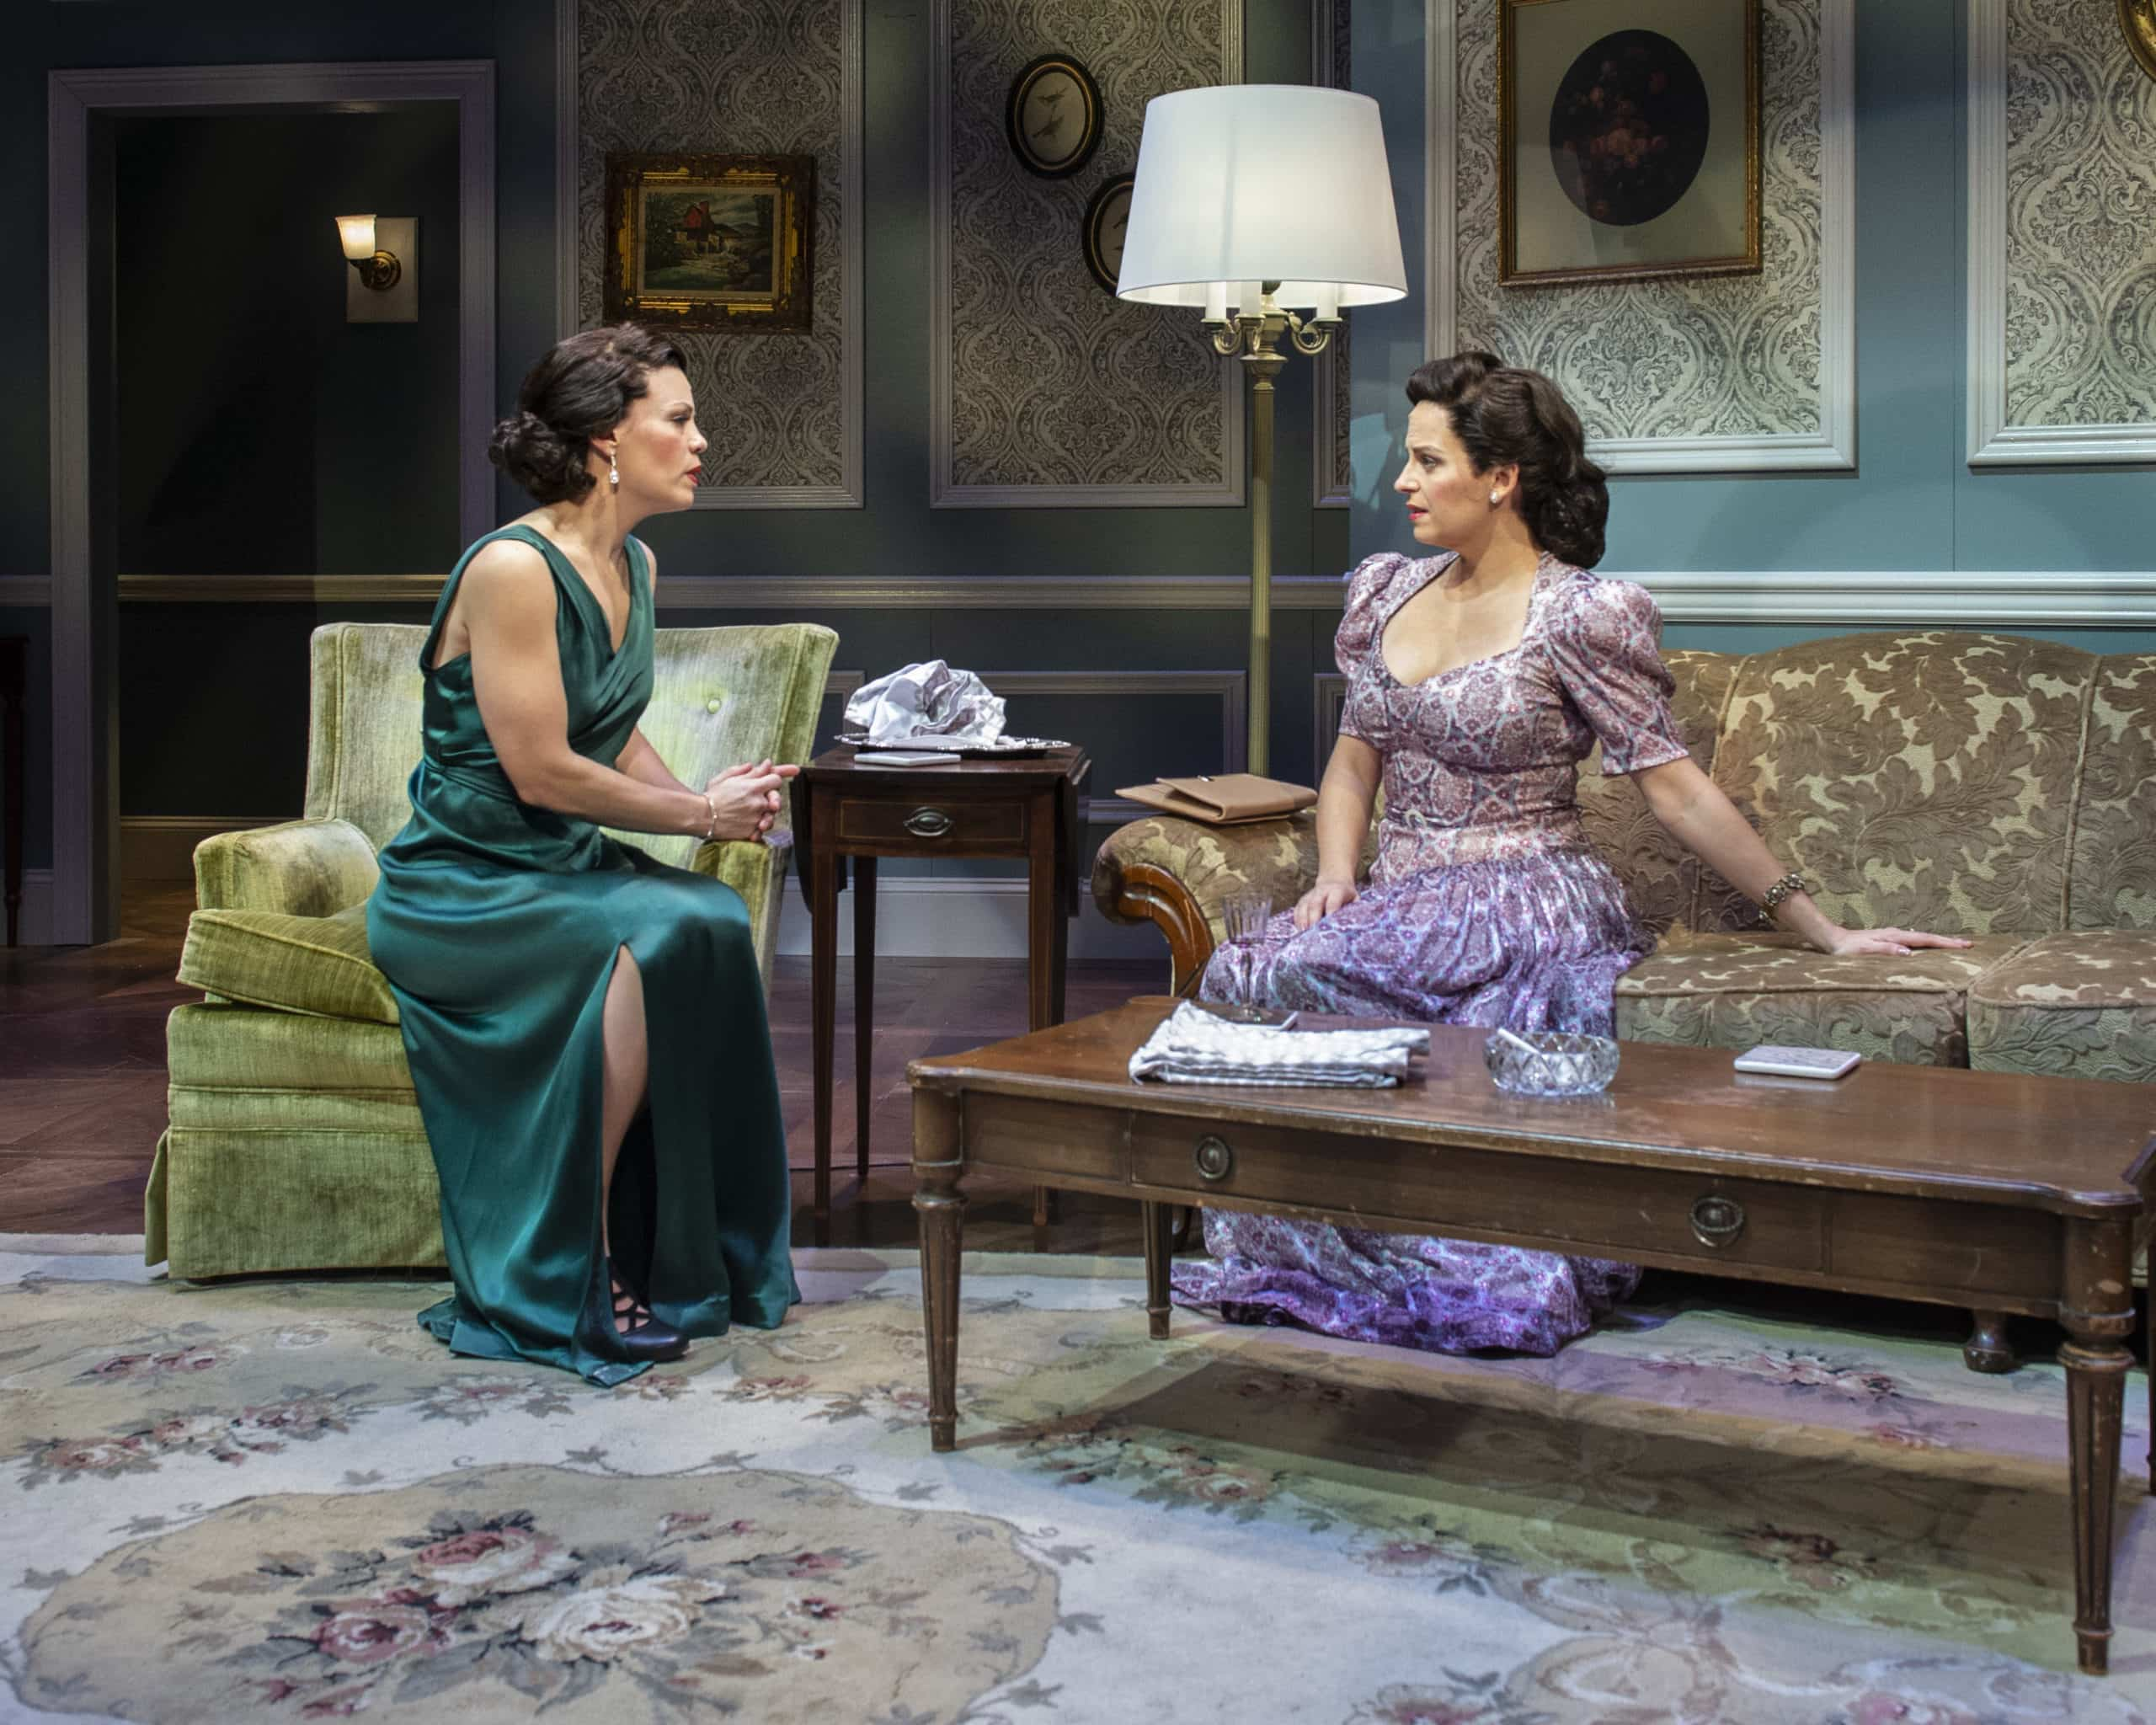 Erin Weaver and Kimberly Gilbert in 'Sheltered' at Theater J. Photo by Teresa Castracane.